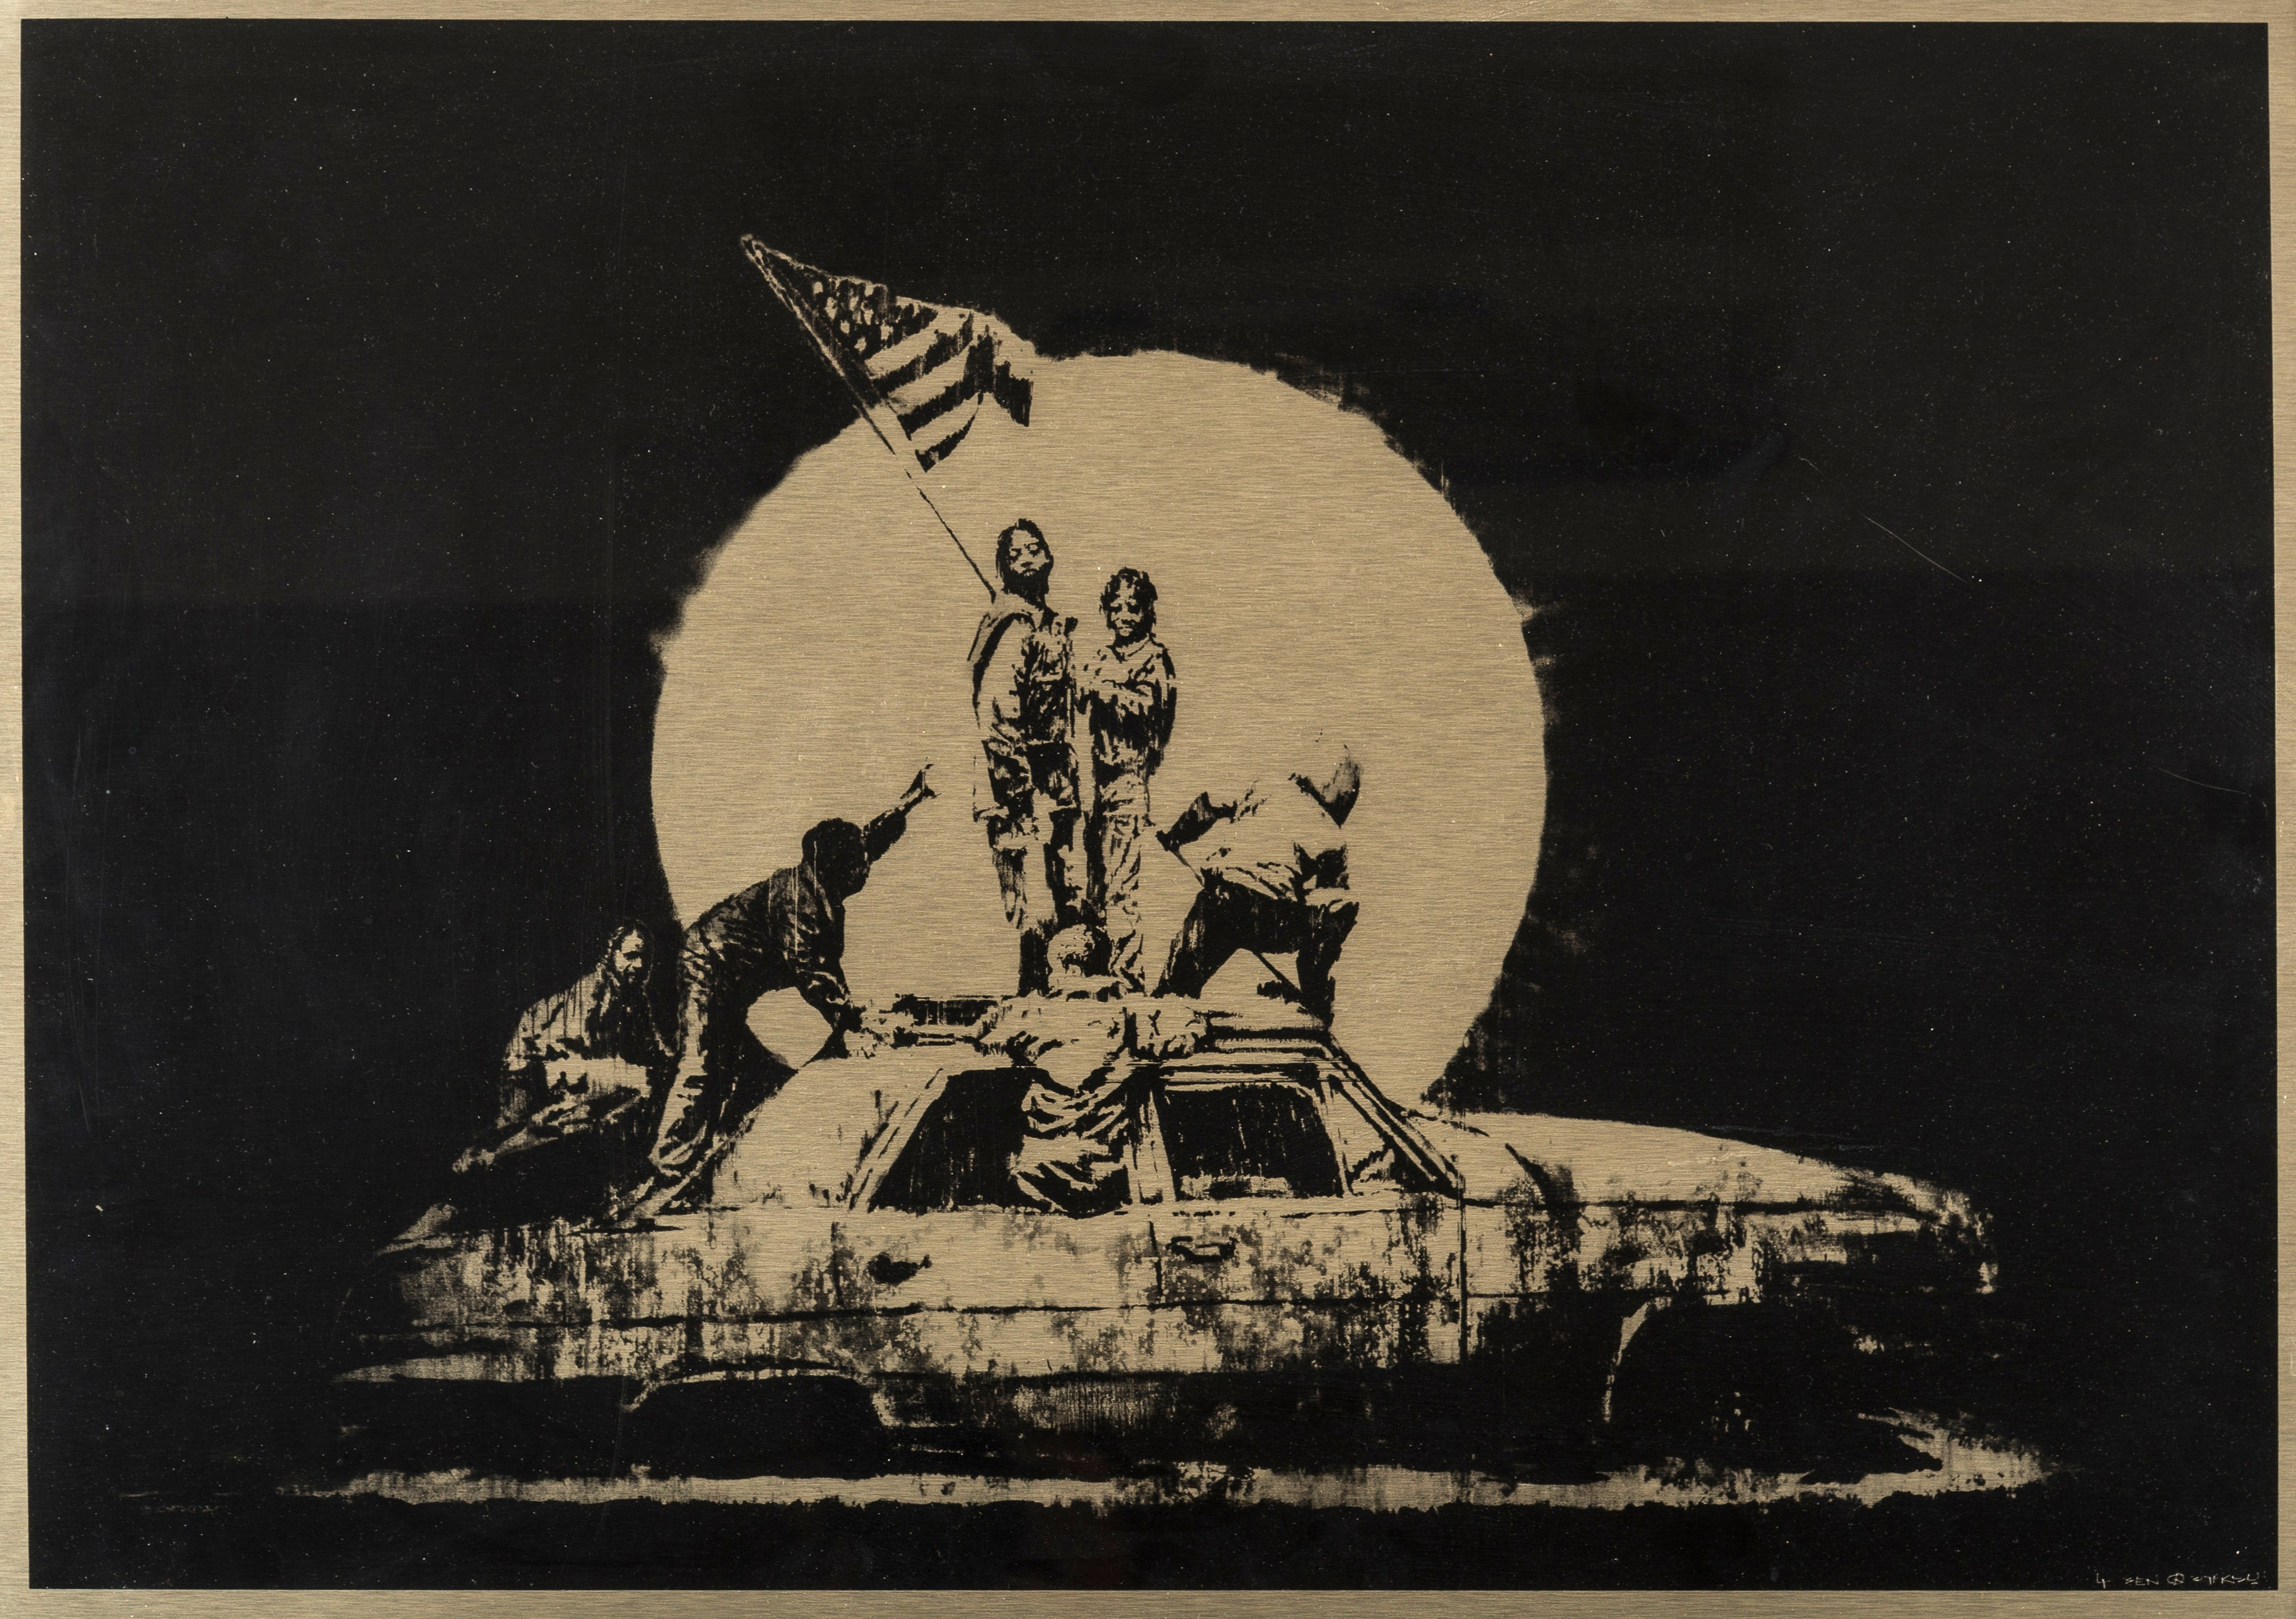 Banksy Artworks Up For Auction In New York In Pictures Banksy Artwork Banksy Banksy Art